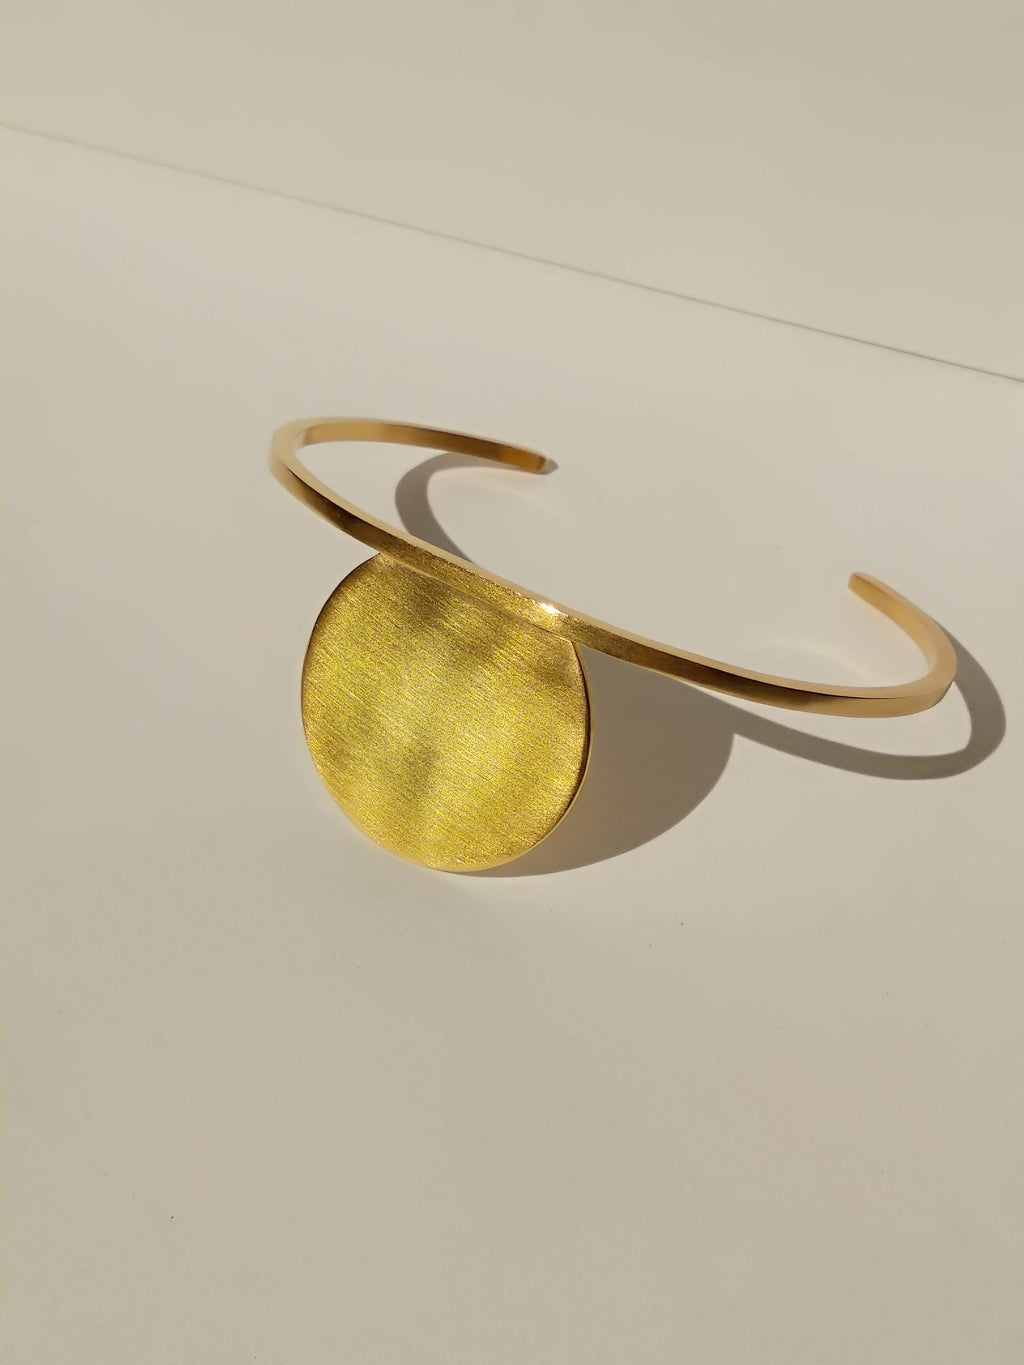 24K Gold Plated Cut Circle and Square Wire Cuff | Secant Cuff